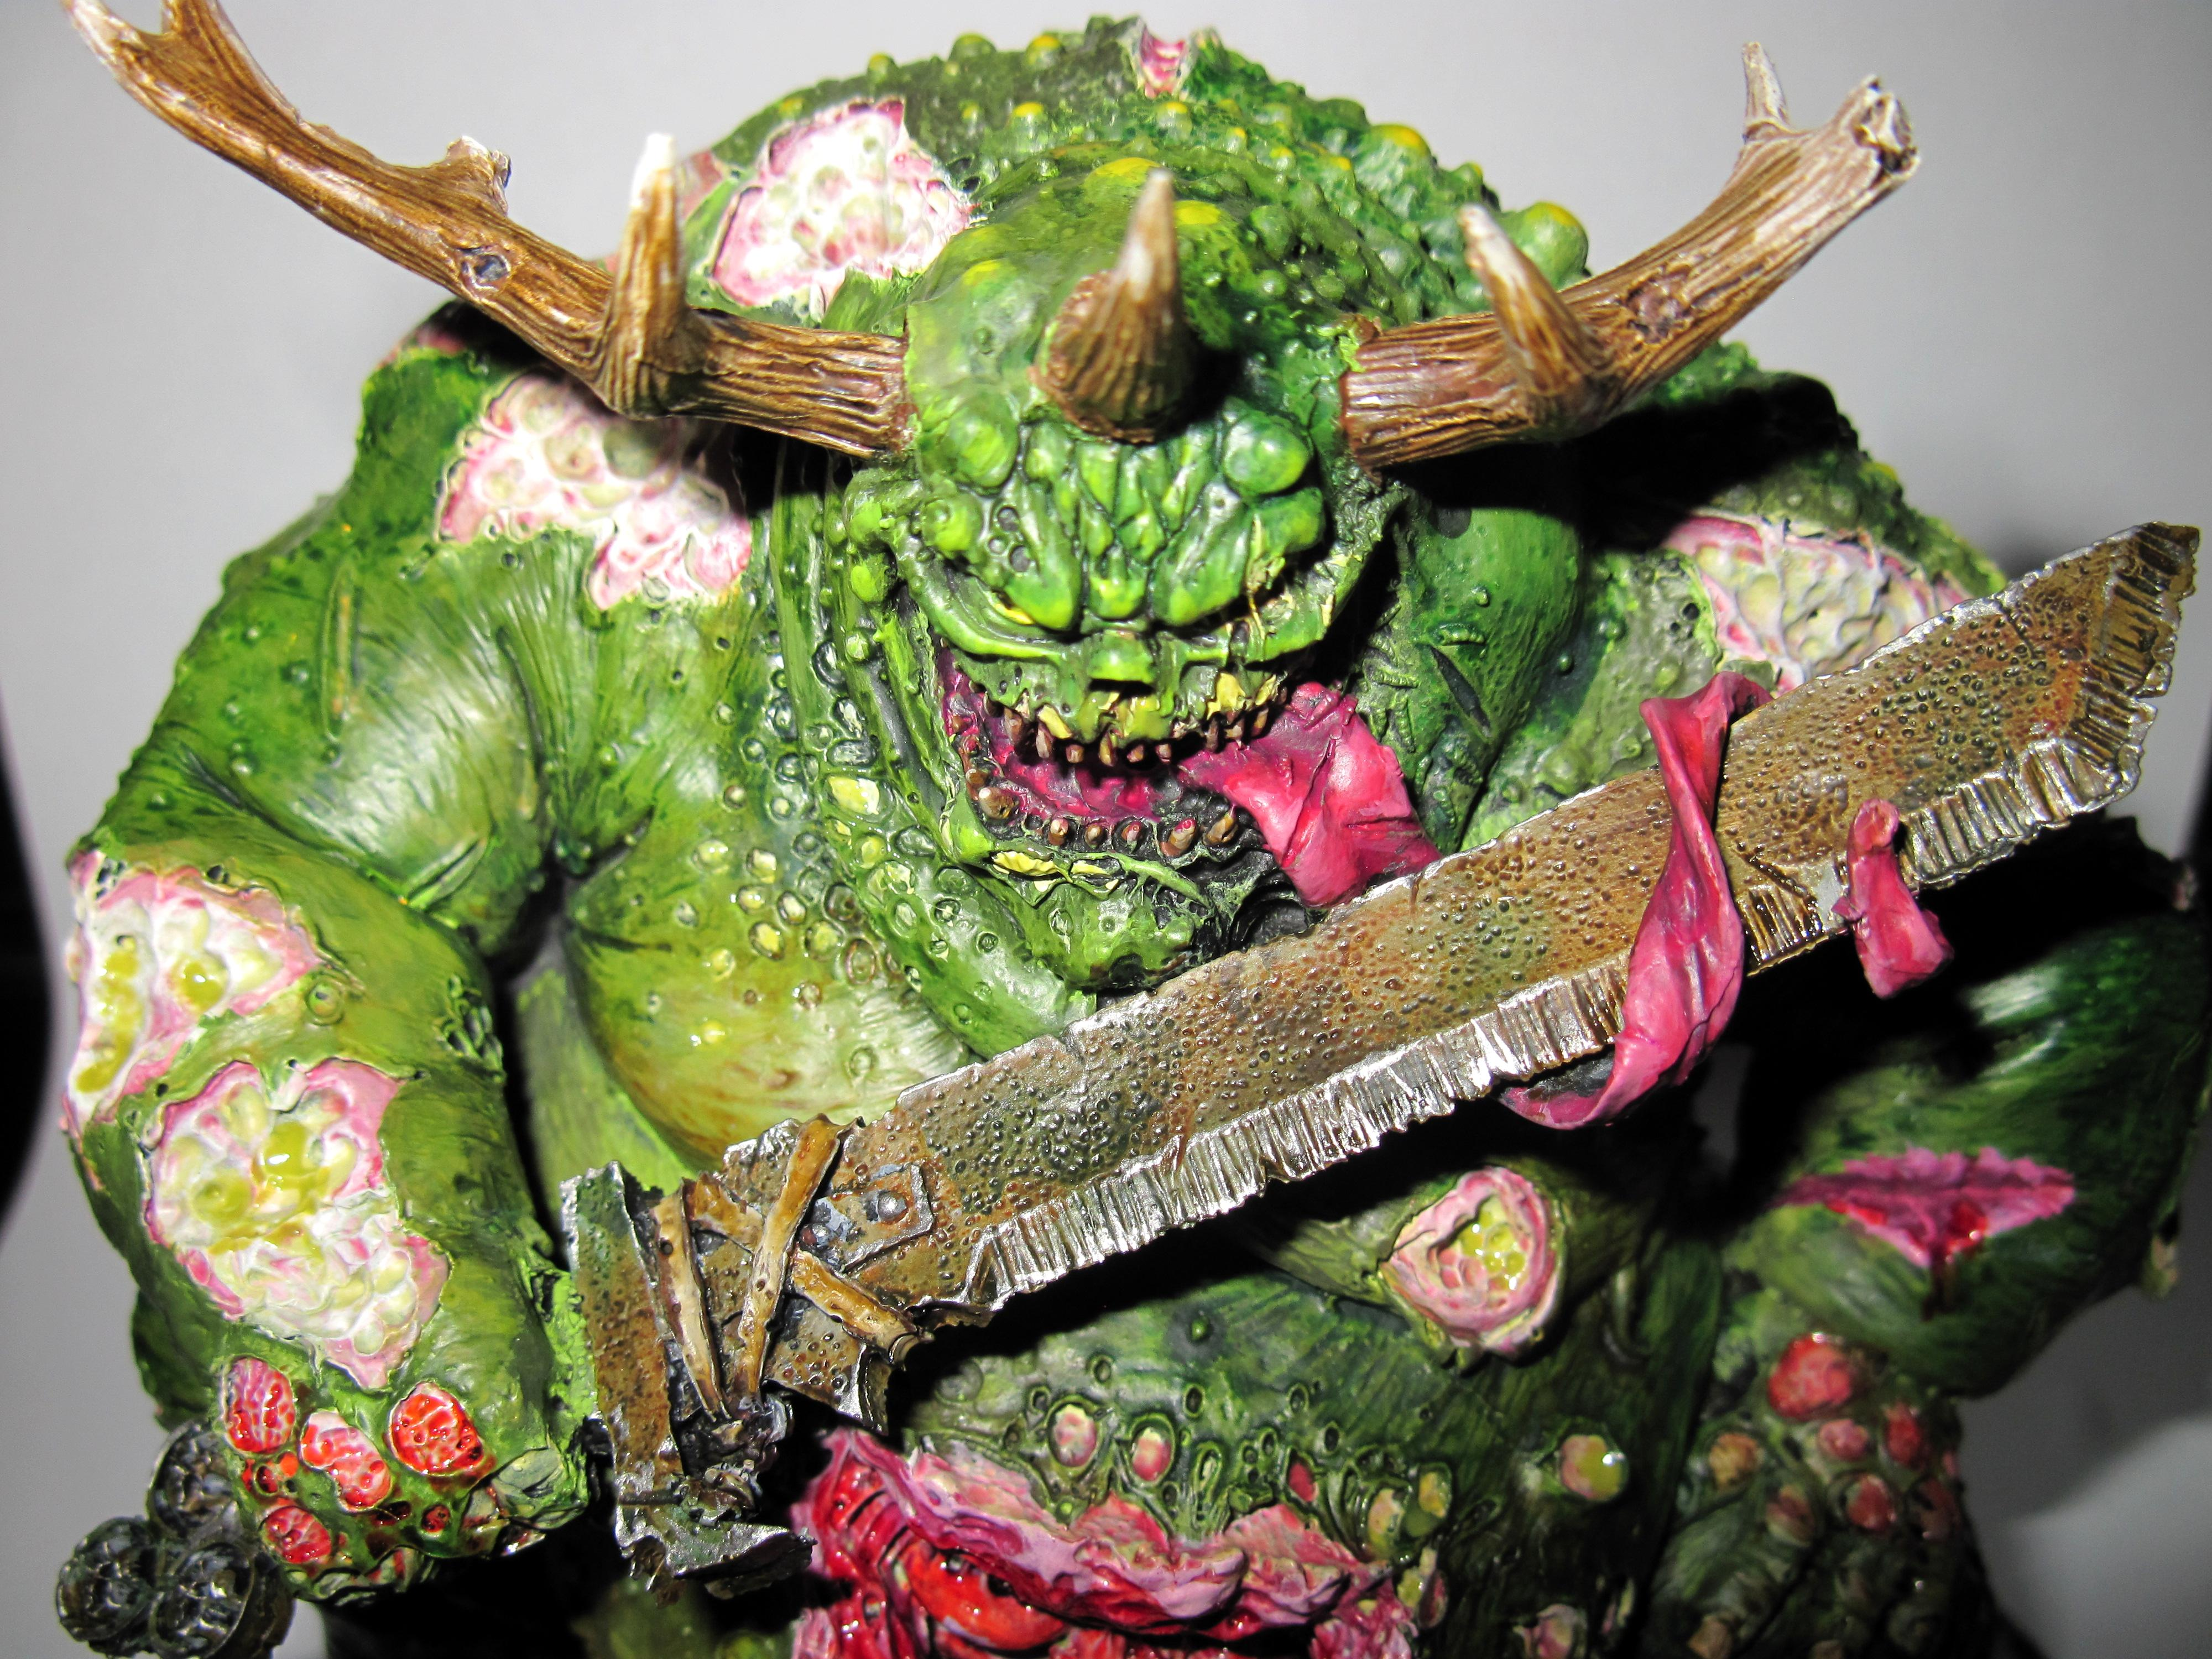 Forge World, Great Unclean One, Guo, Nurgle